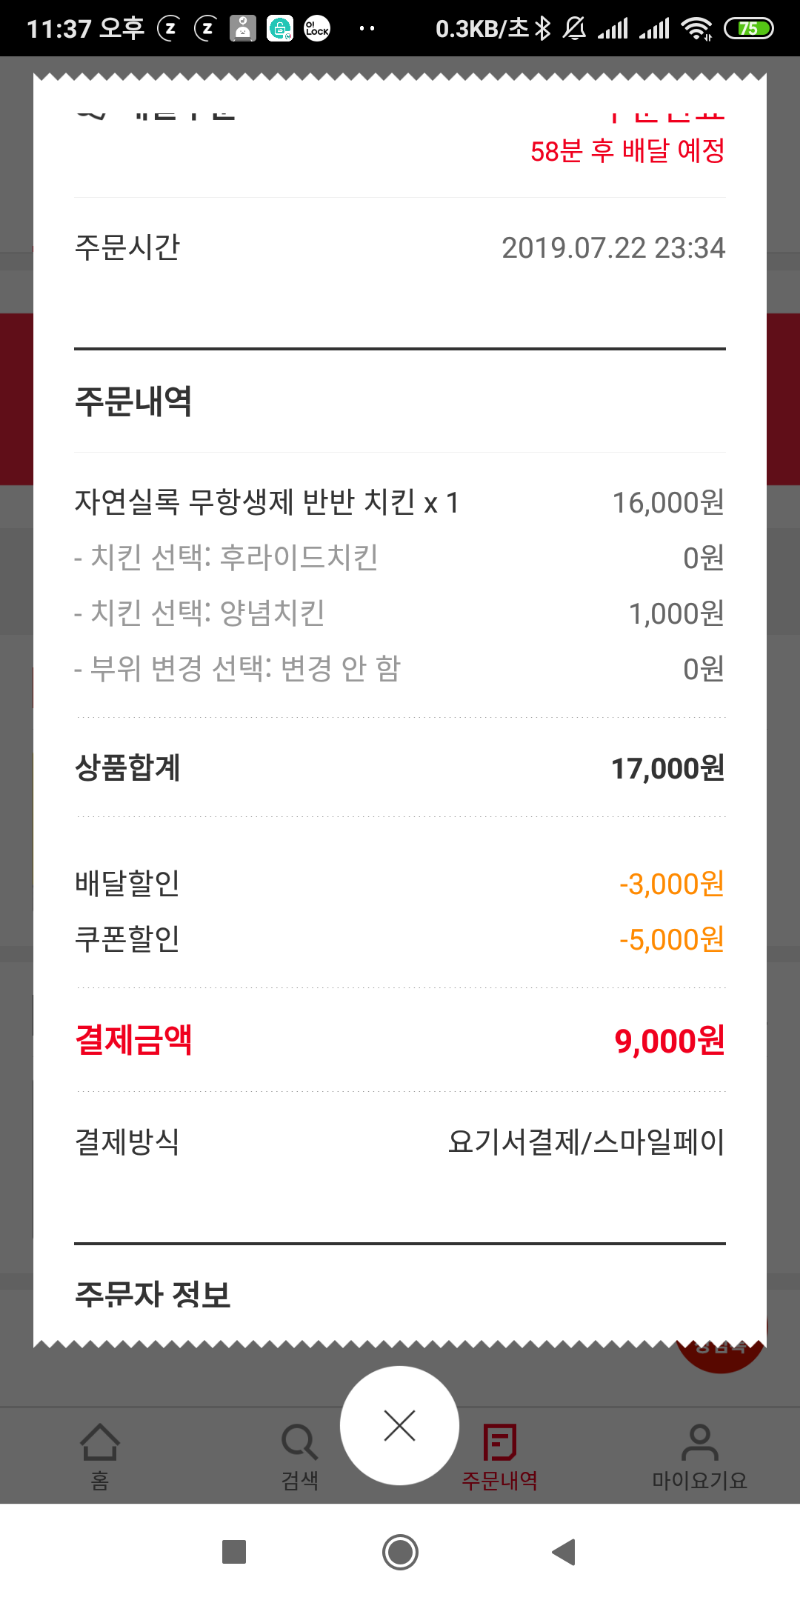 Screenshot_2019-07-22-23-37-53-512_com.fineapp.yogiyo.png